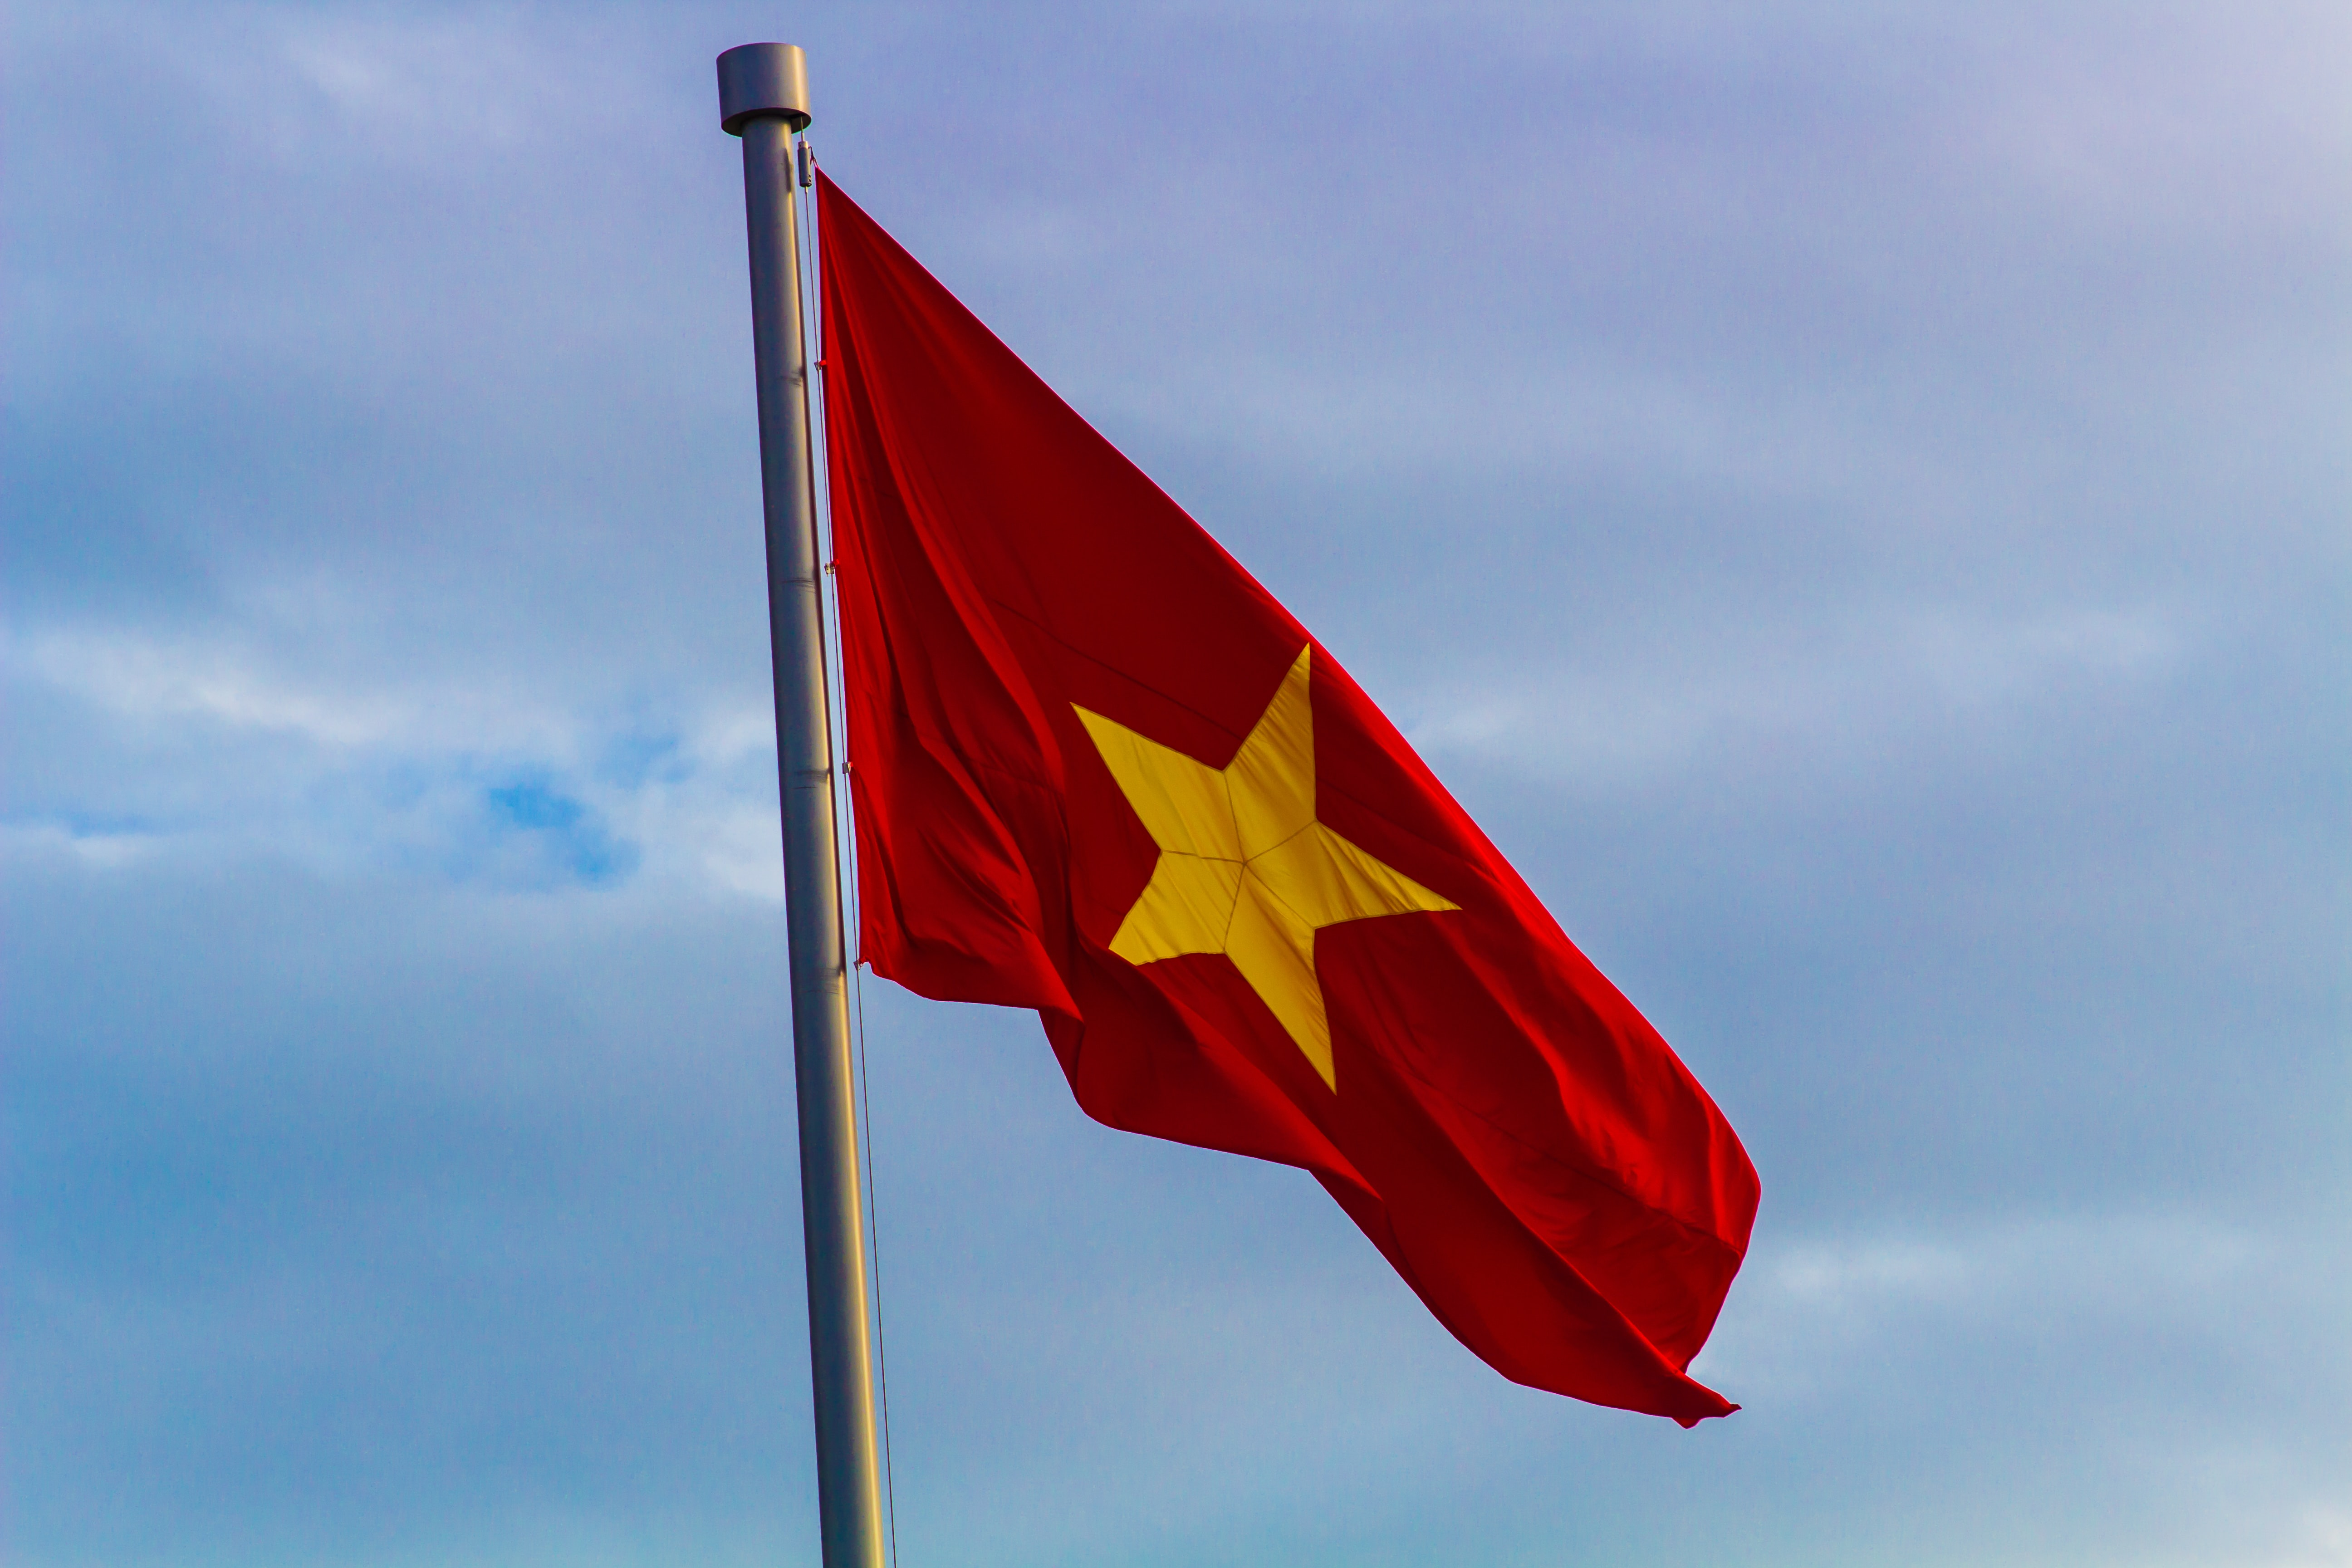 red and yellow flag with star on pole